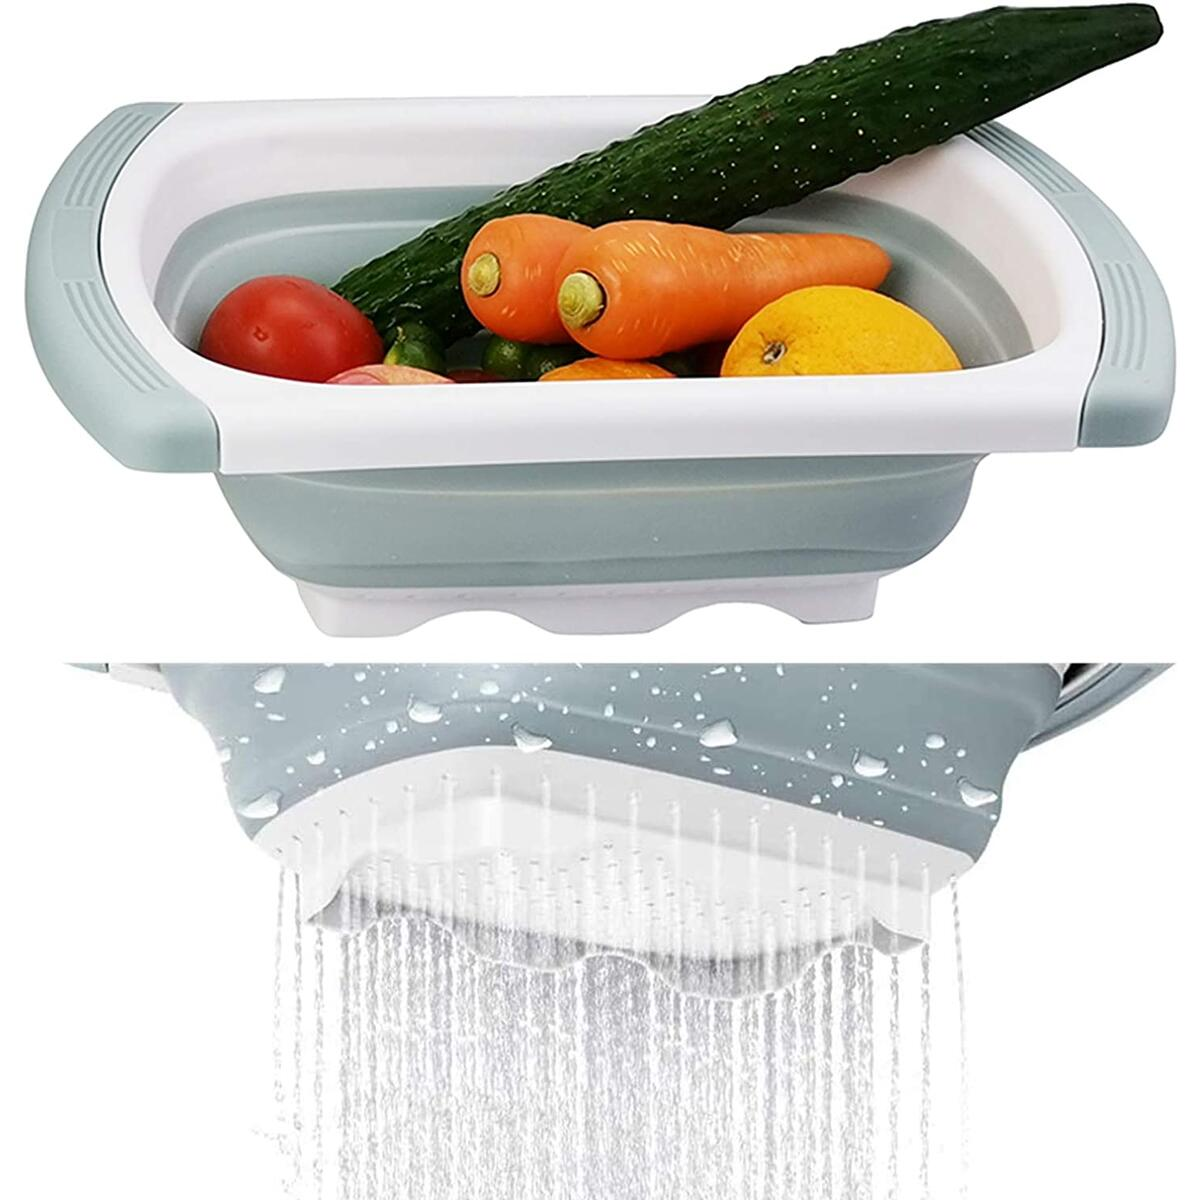 Collapsible Colander, 3-Packs Silicone Kitchen Strainer Set, 1pc 6 Quart Over the Sink Strainer, 1pc 4 Quart and 1pc 2 Quart Round Folding Strainers